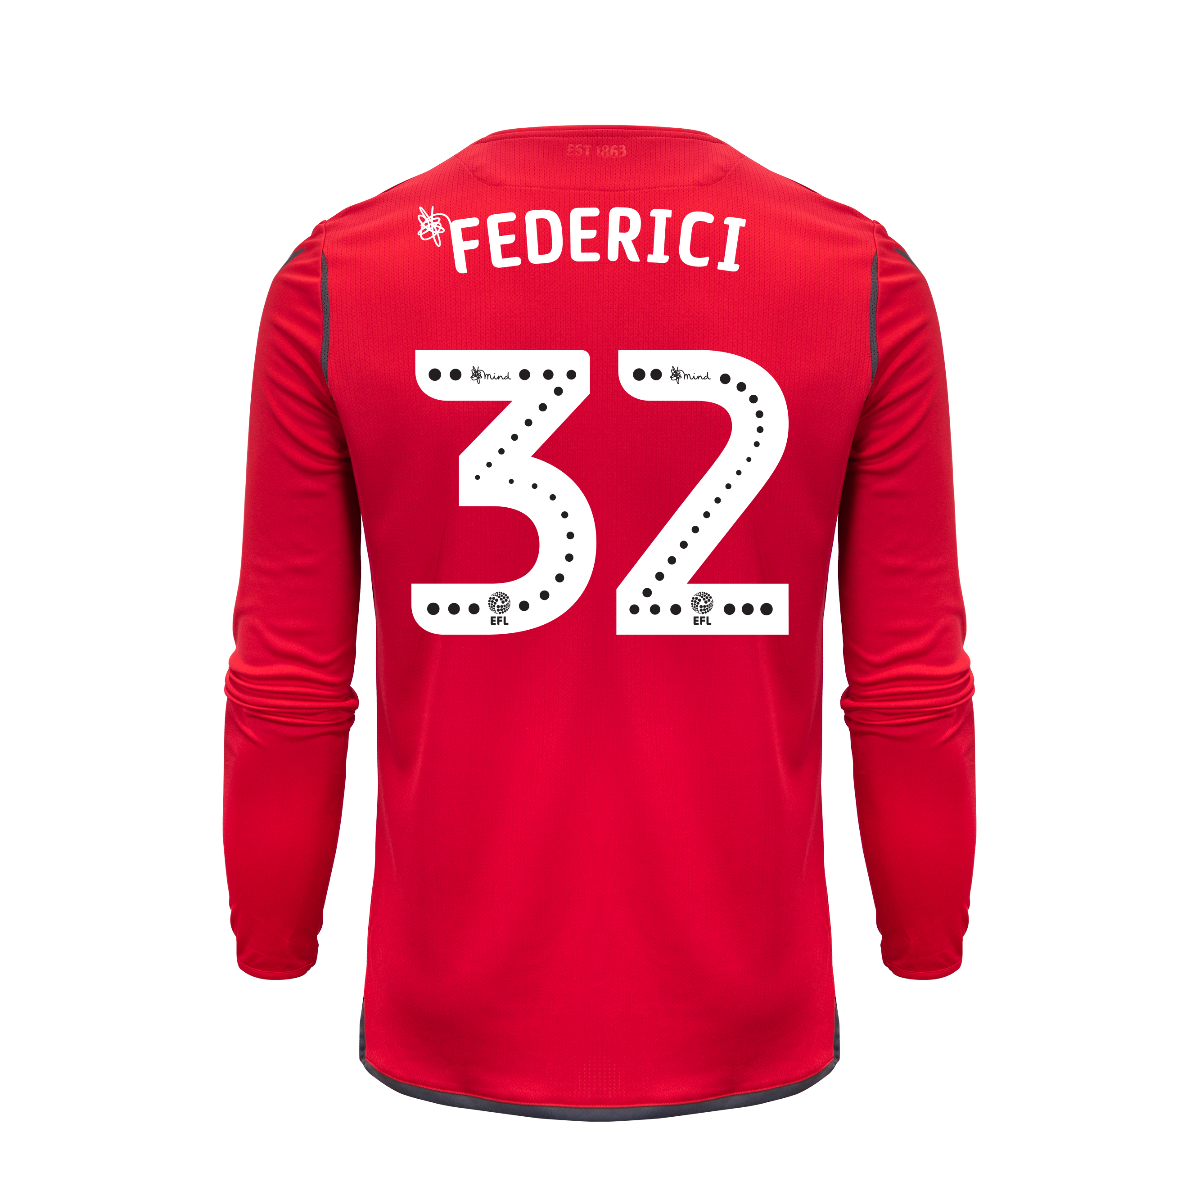 2019/20 Junior Away GK Shirt - Federici